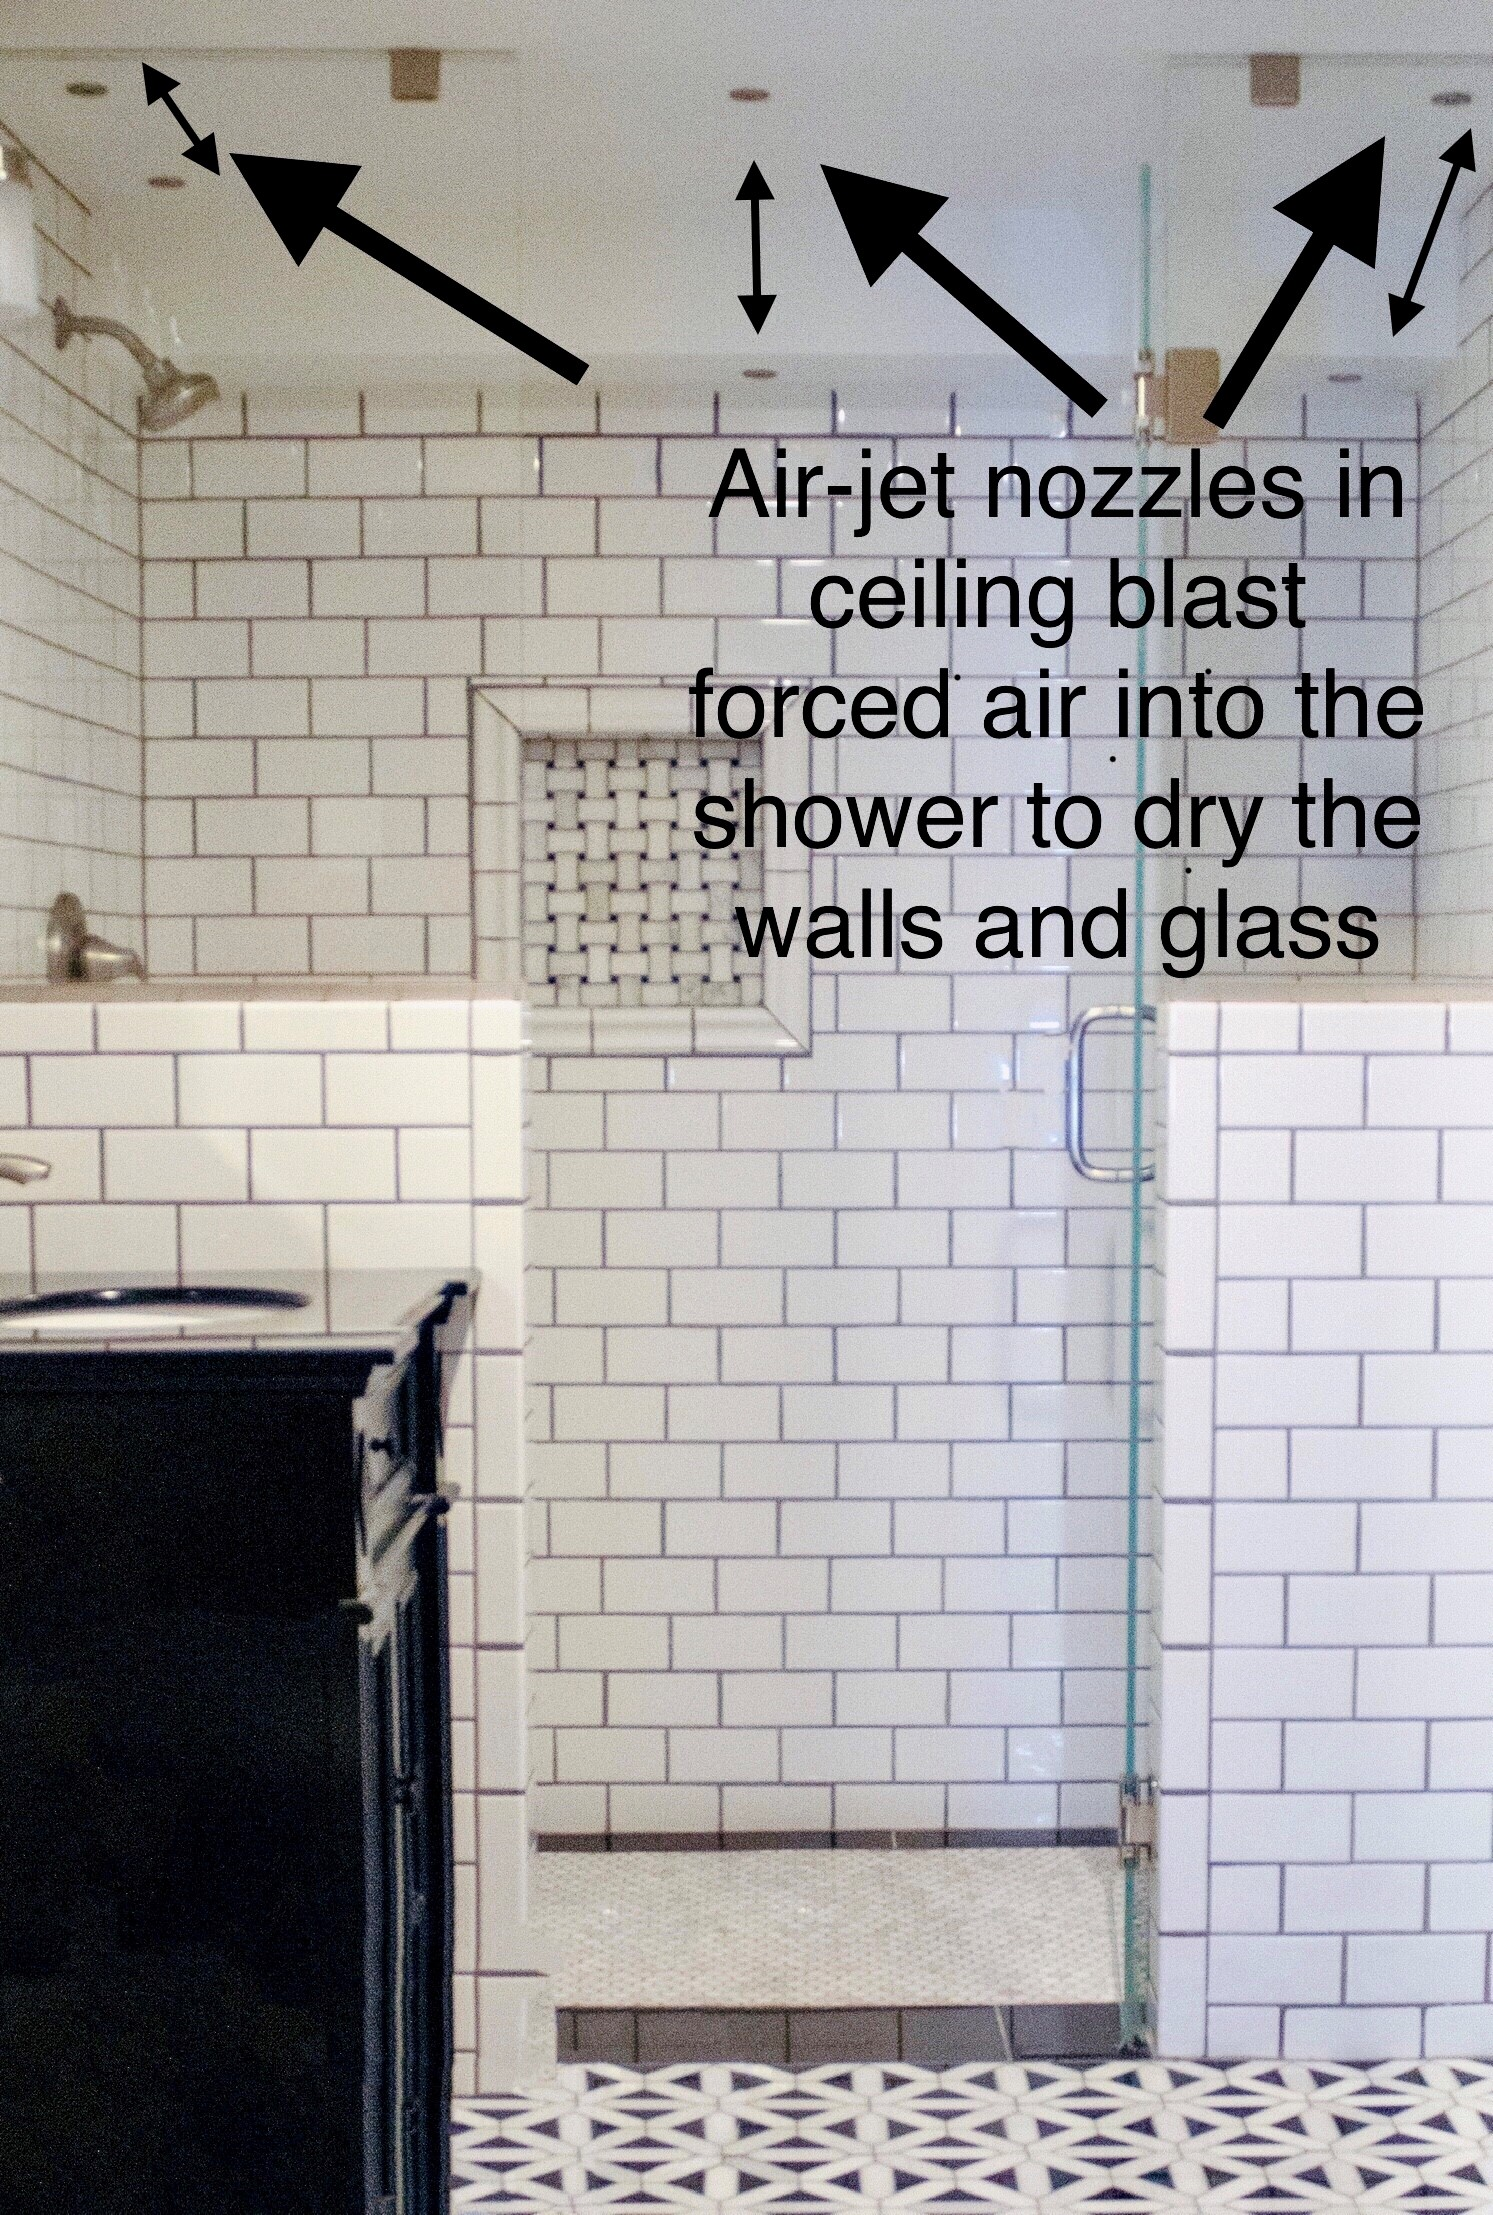 Airmada shower drying system using six air-jet nozzles in the ceiling.